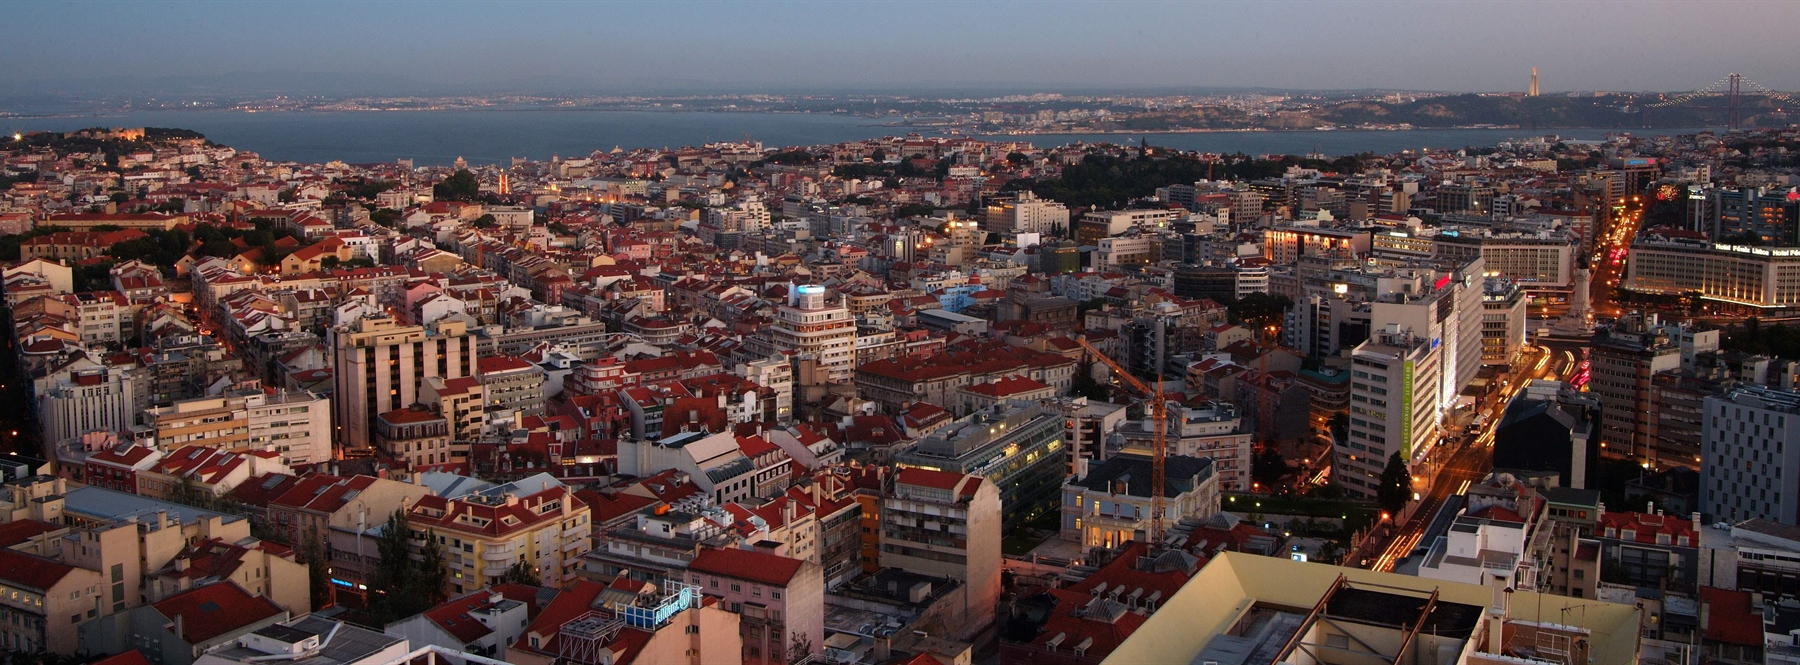 View of city from above